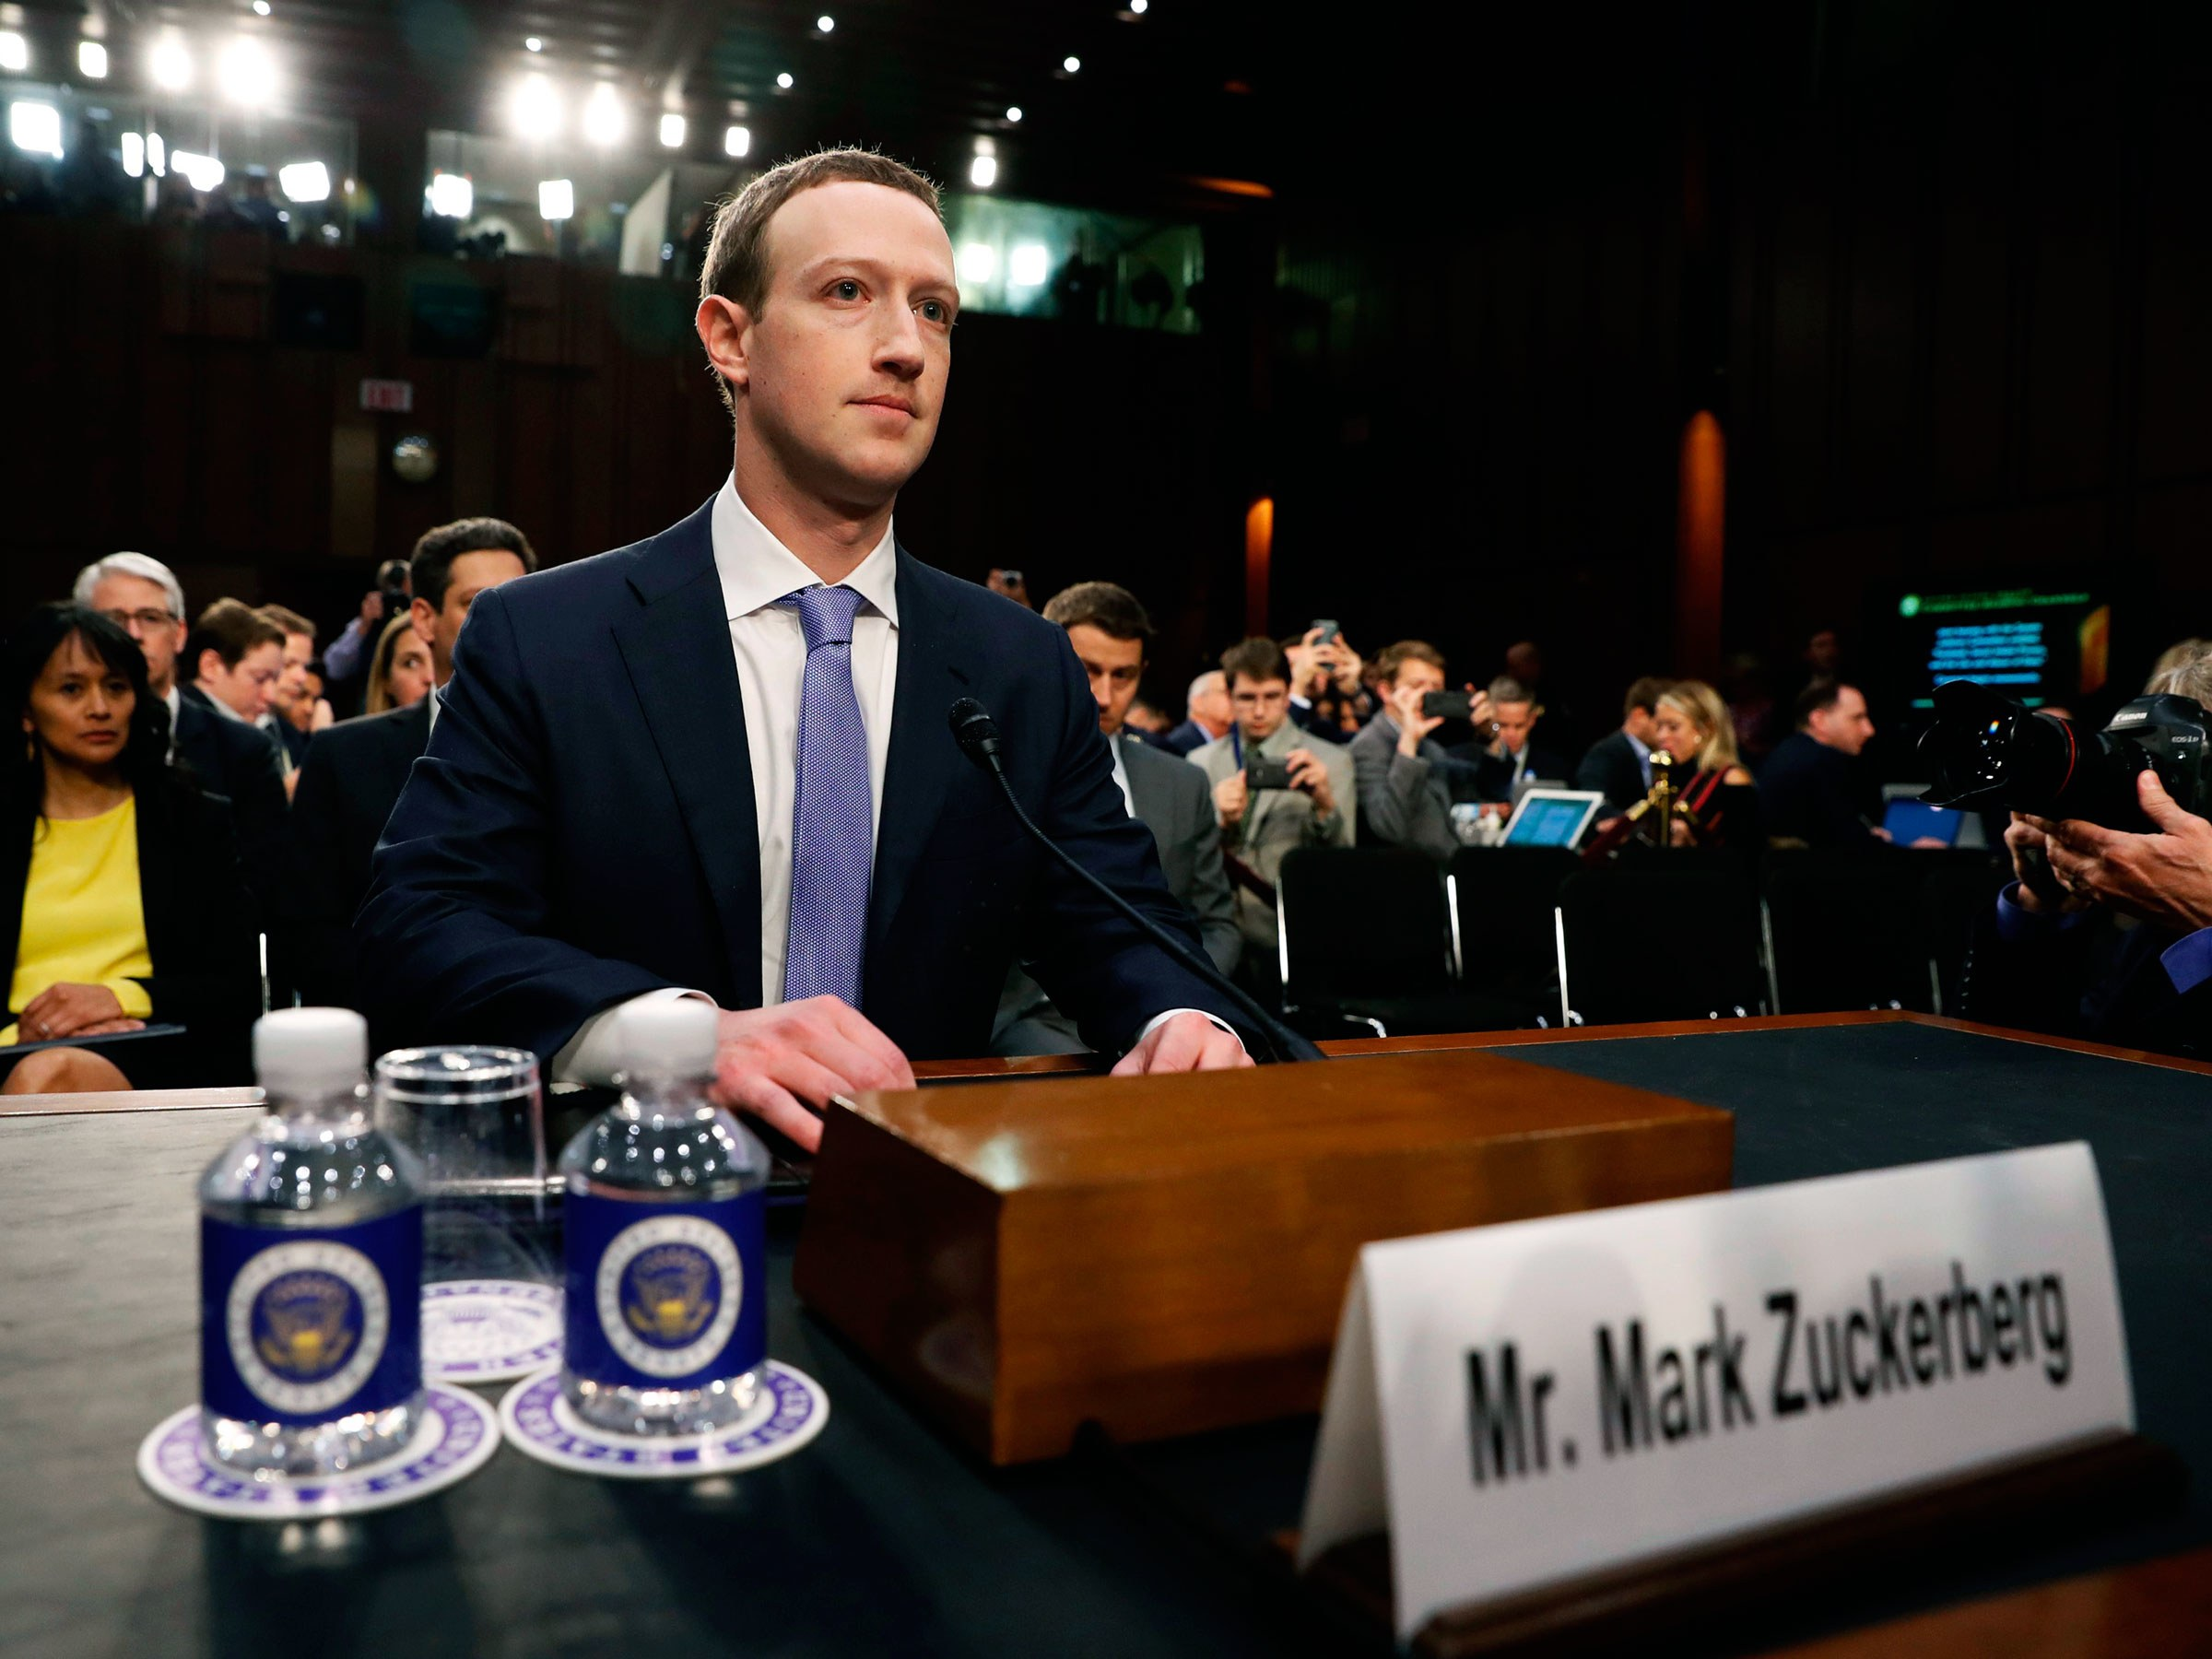 sursa imaginii https://www.wired.com/story/mark-zuckerberg-congress-day-one/